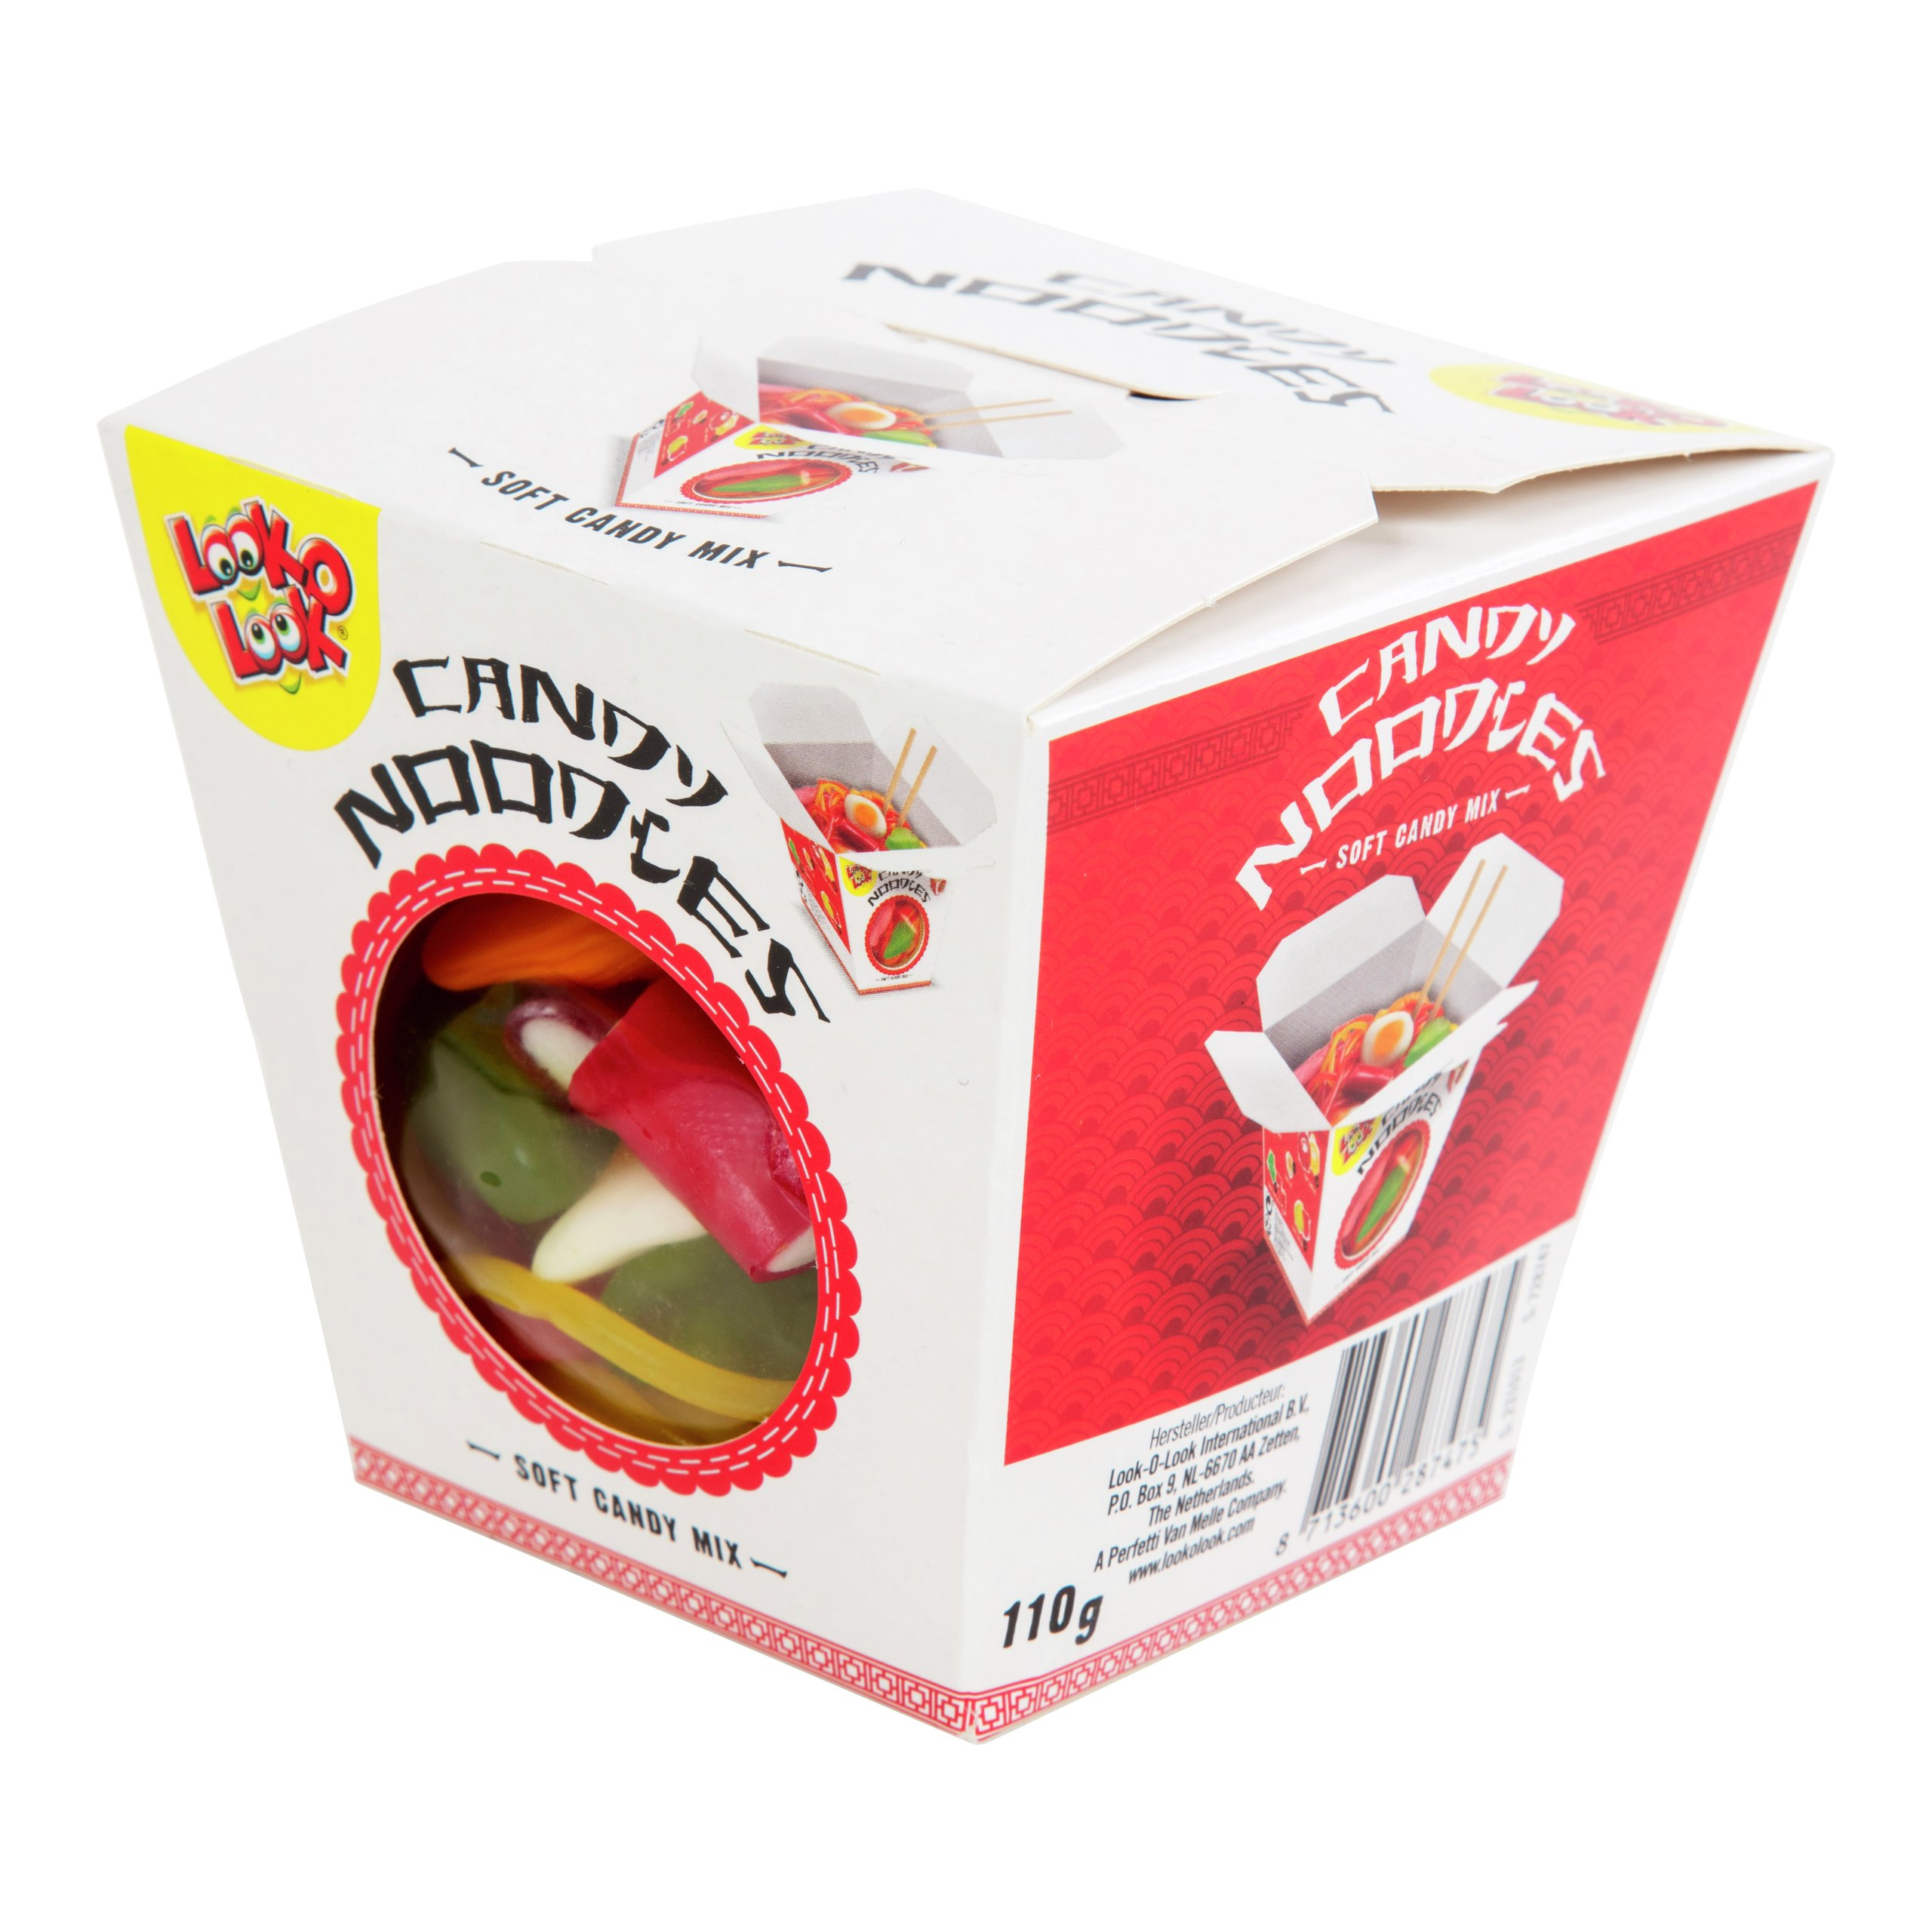 LOOK-O-LOOK CANDY NOODLES 110G-100653